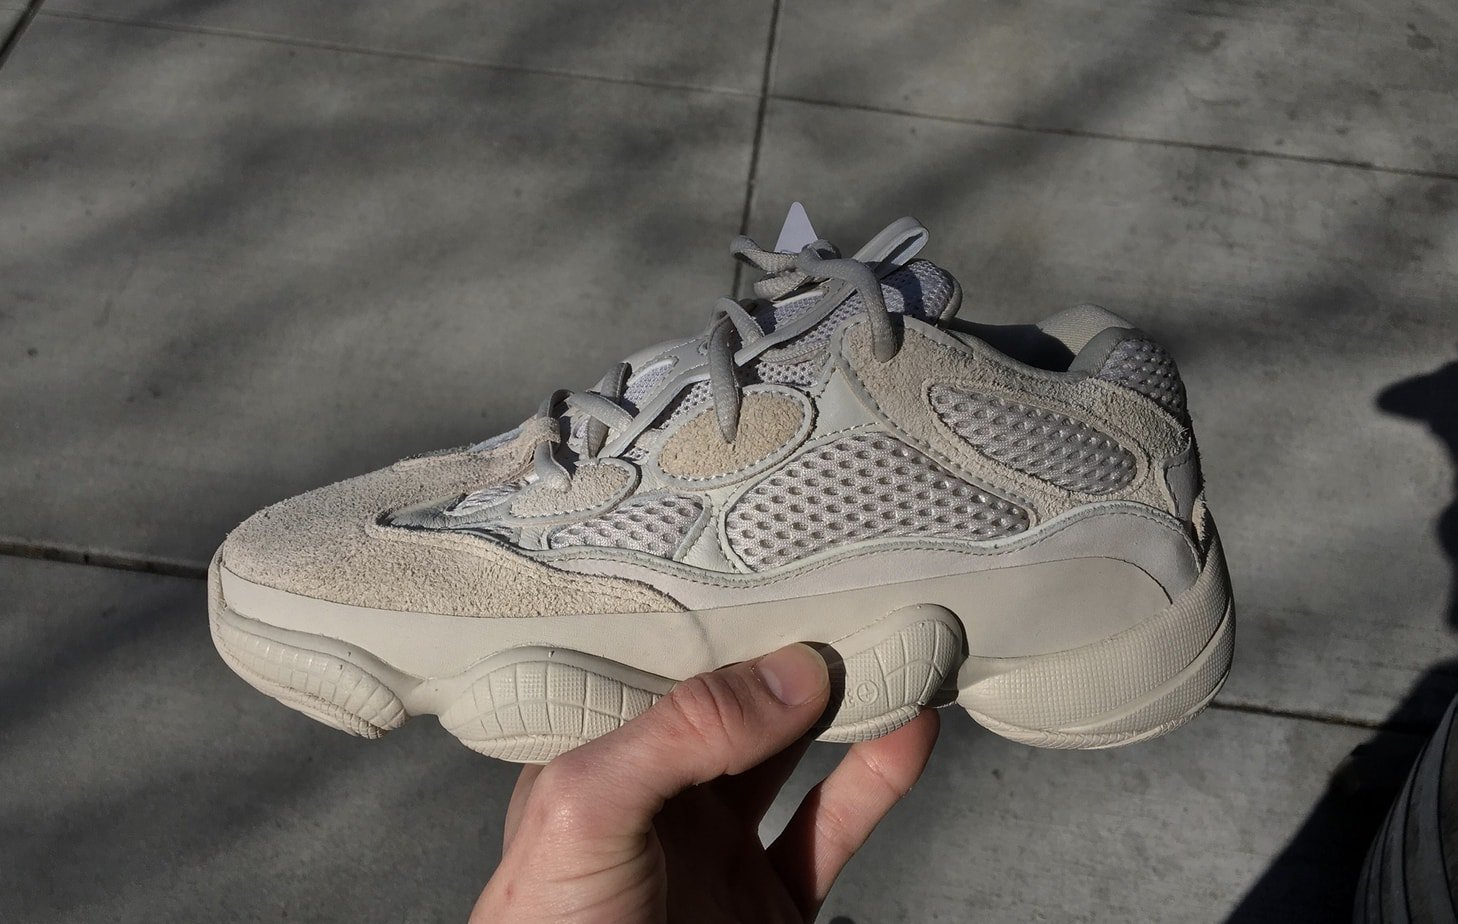 f2d332a6b4cd7 Kanye West and adidas are slowly but surely rolling out a new model. The  unique adidas Yeezy 500 silhouette is first scheduled to ship to consumers  in March ...